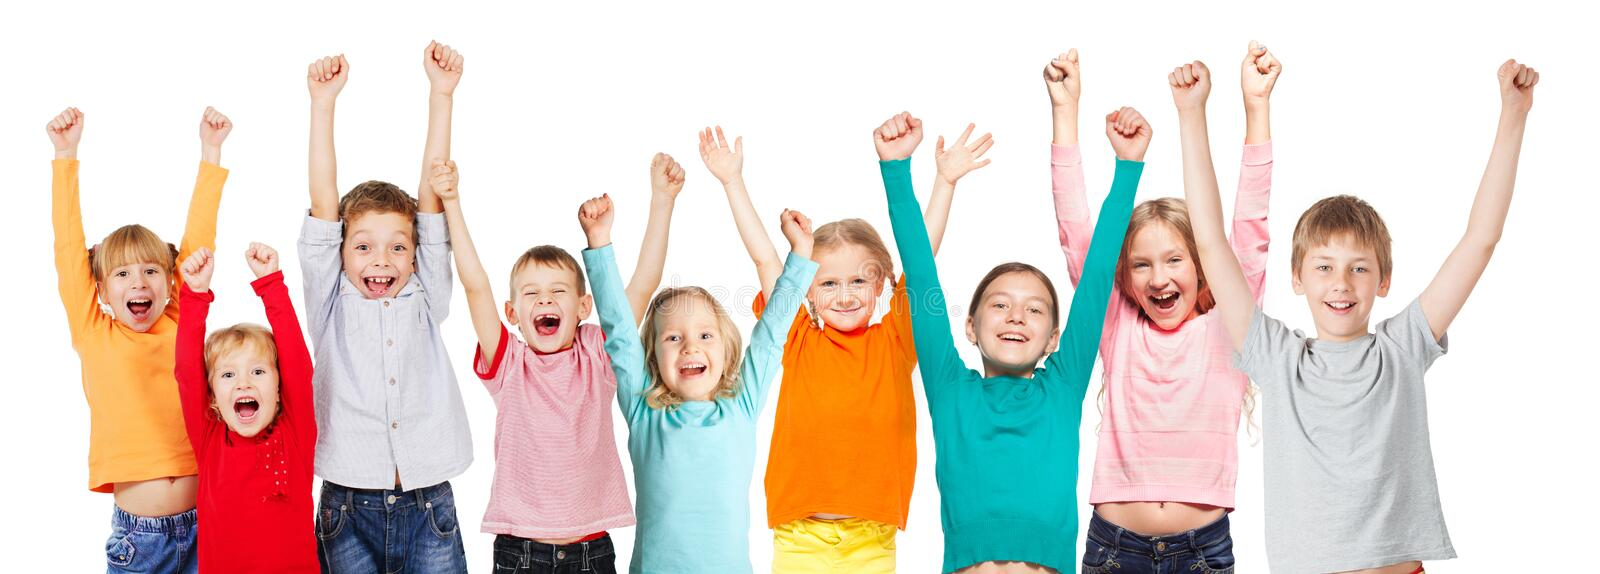 Happiness group kids with their hands up royalty free stock image